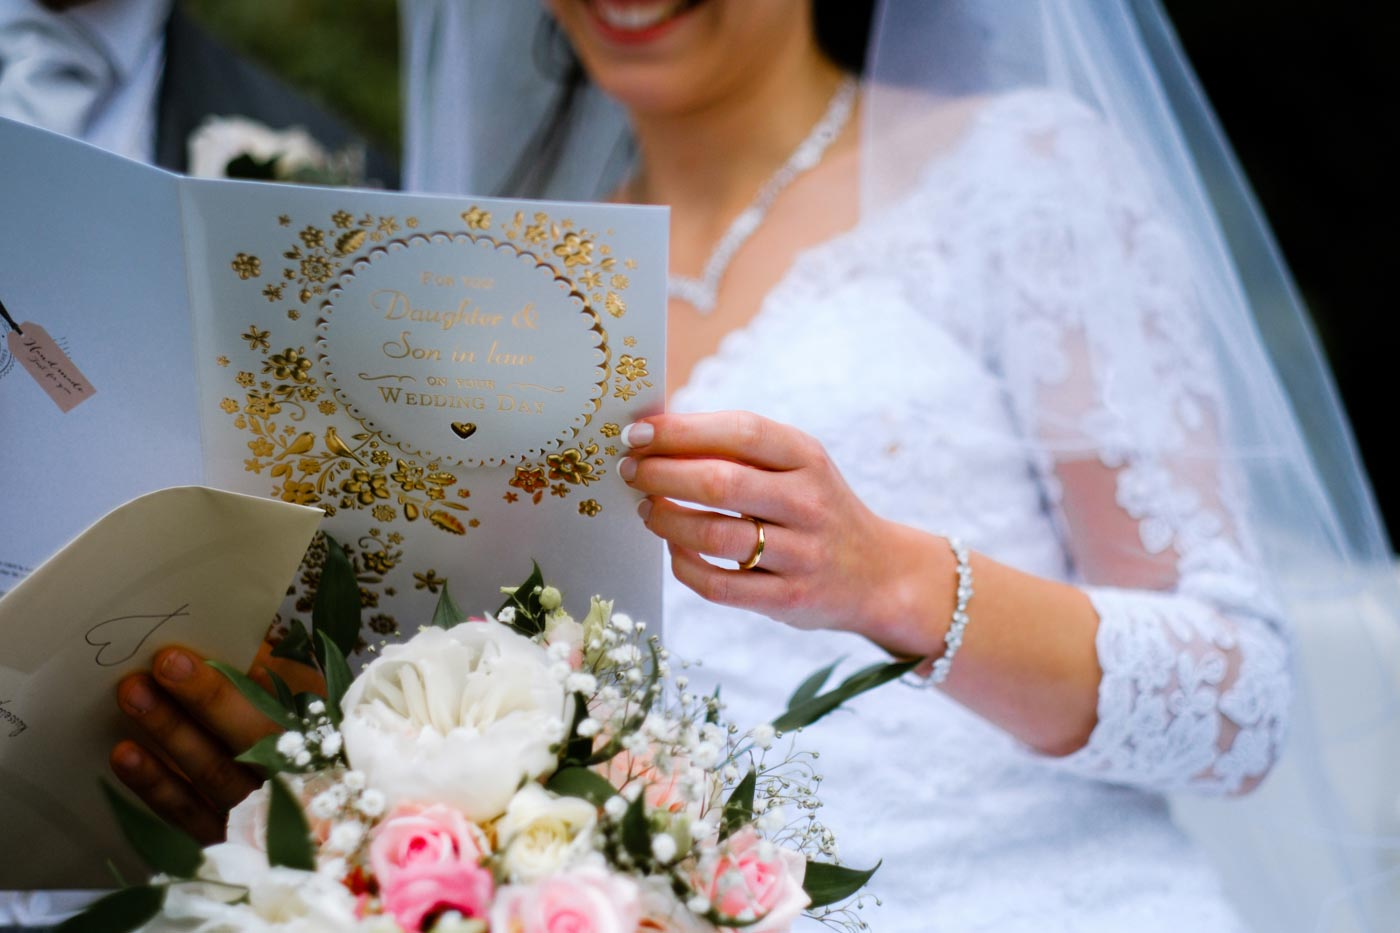 Bride and groom reading card from Bride's parents to them both